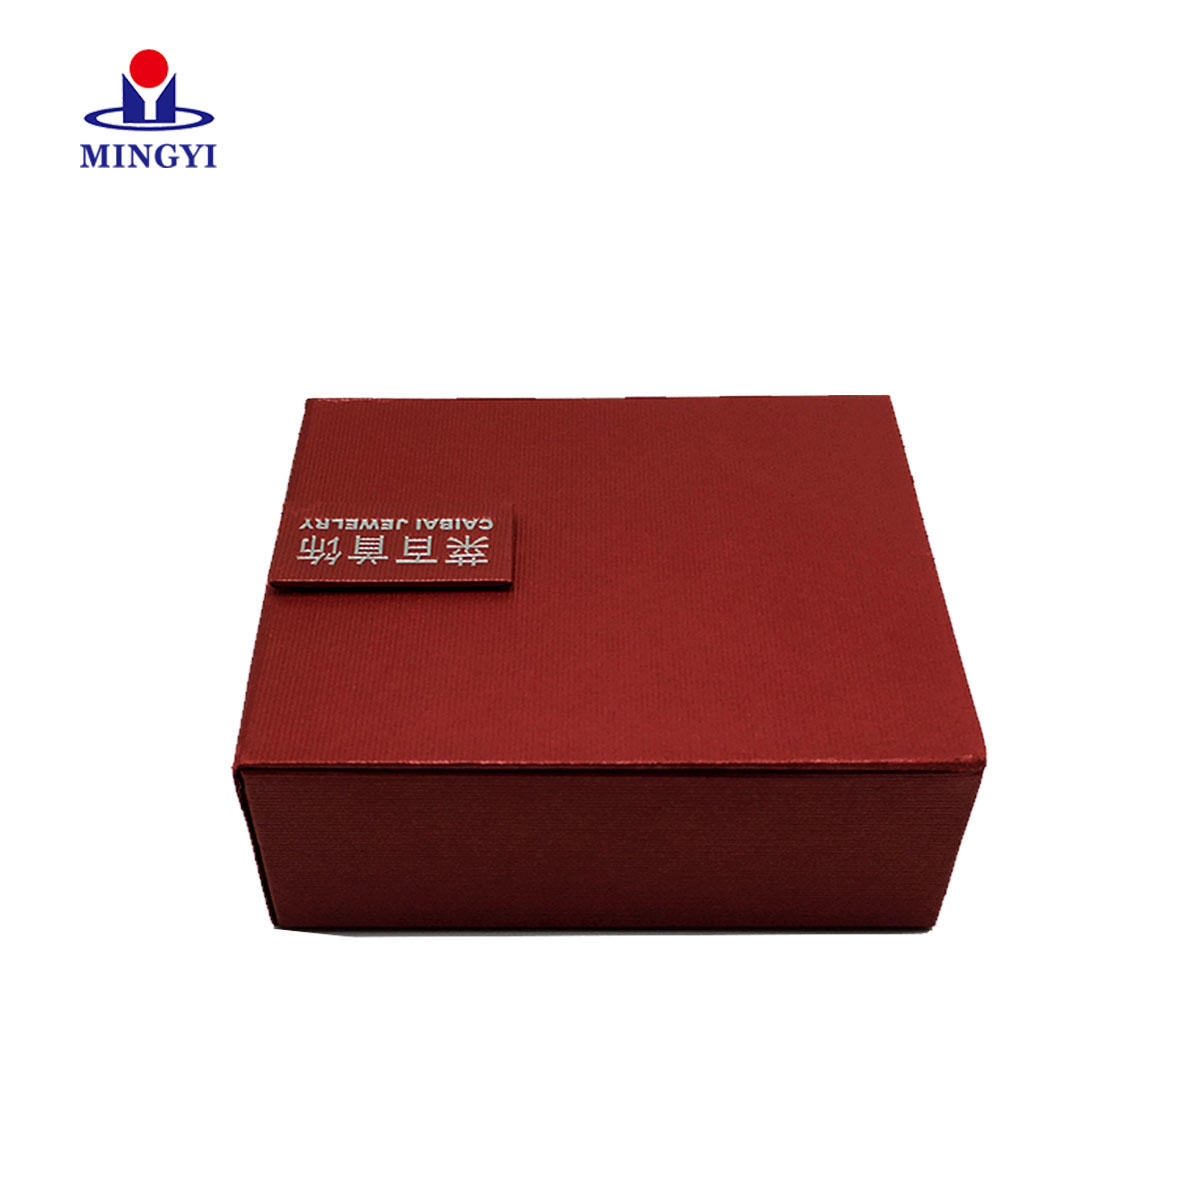 Mingyi Printing New magnetic gift box company for present-2